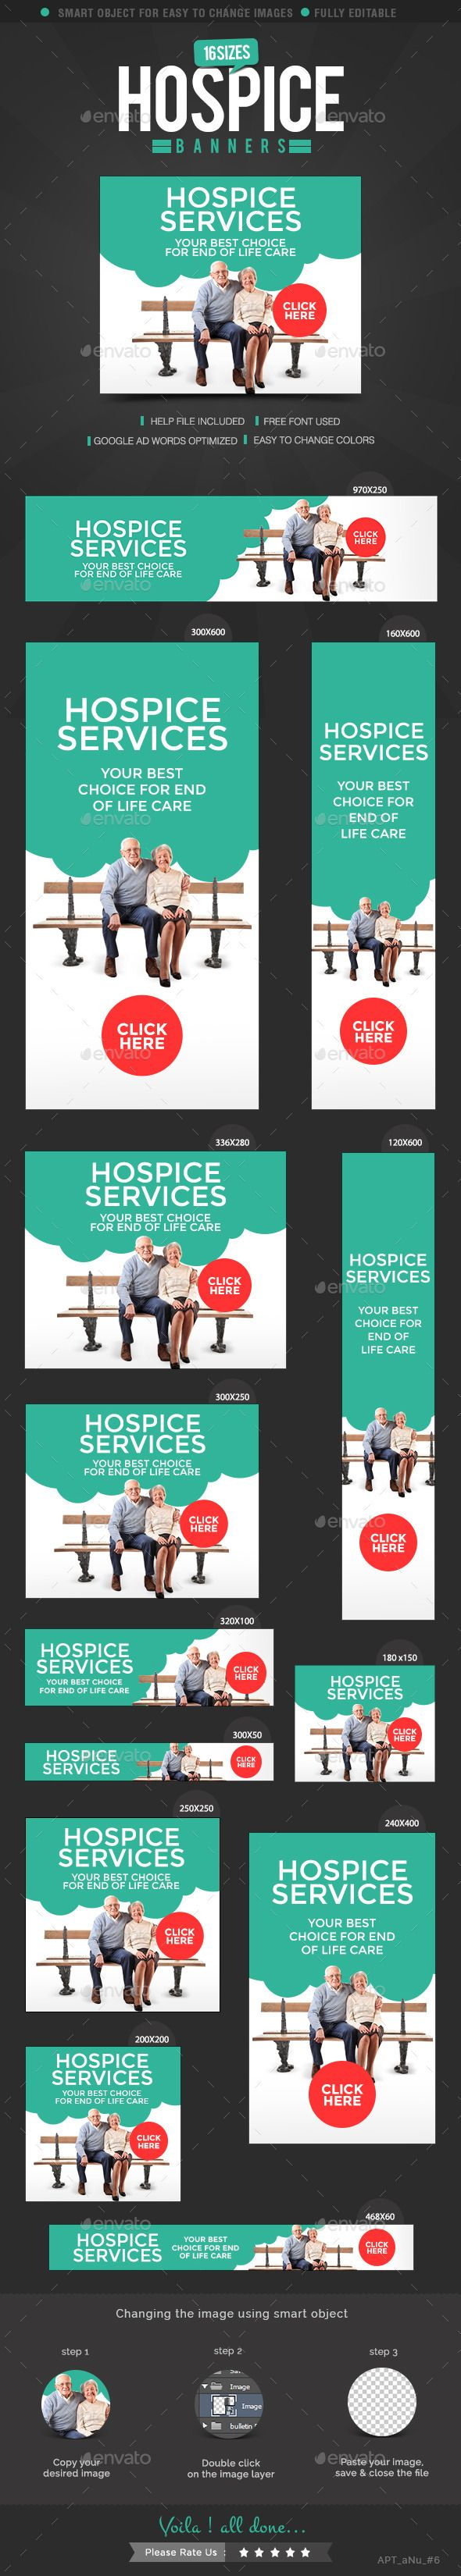 Hospice Care Web Banner Design Set Template PSD | Buy and Download: http://graphicriver.net/item/hospice-care-web-banner-design-set/8980527?WT.ac=category_thumb&WT.z_author=doto&ref=ksioks